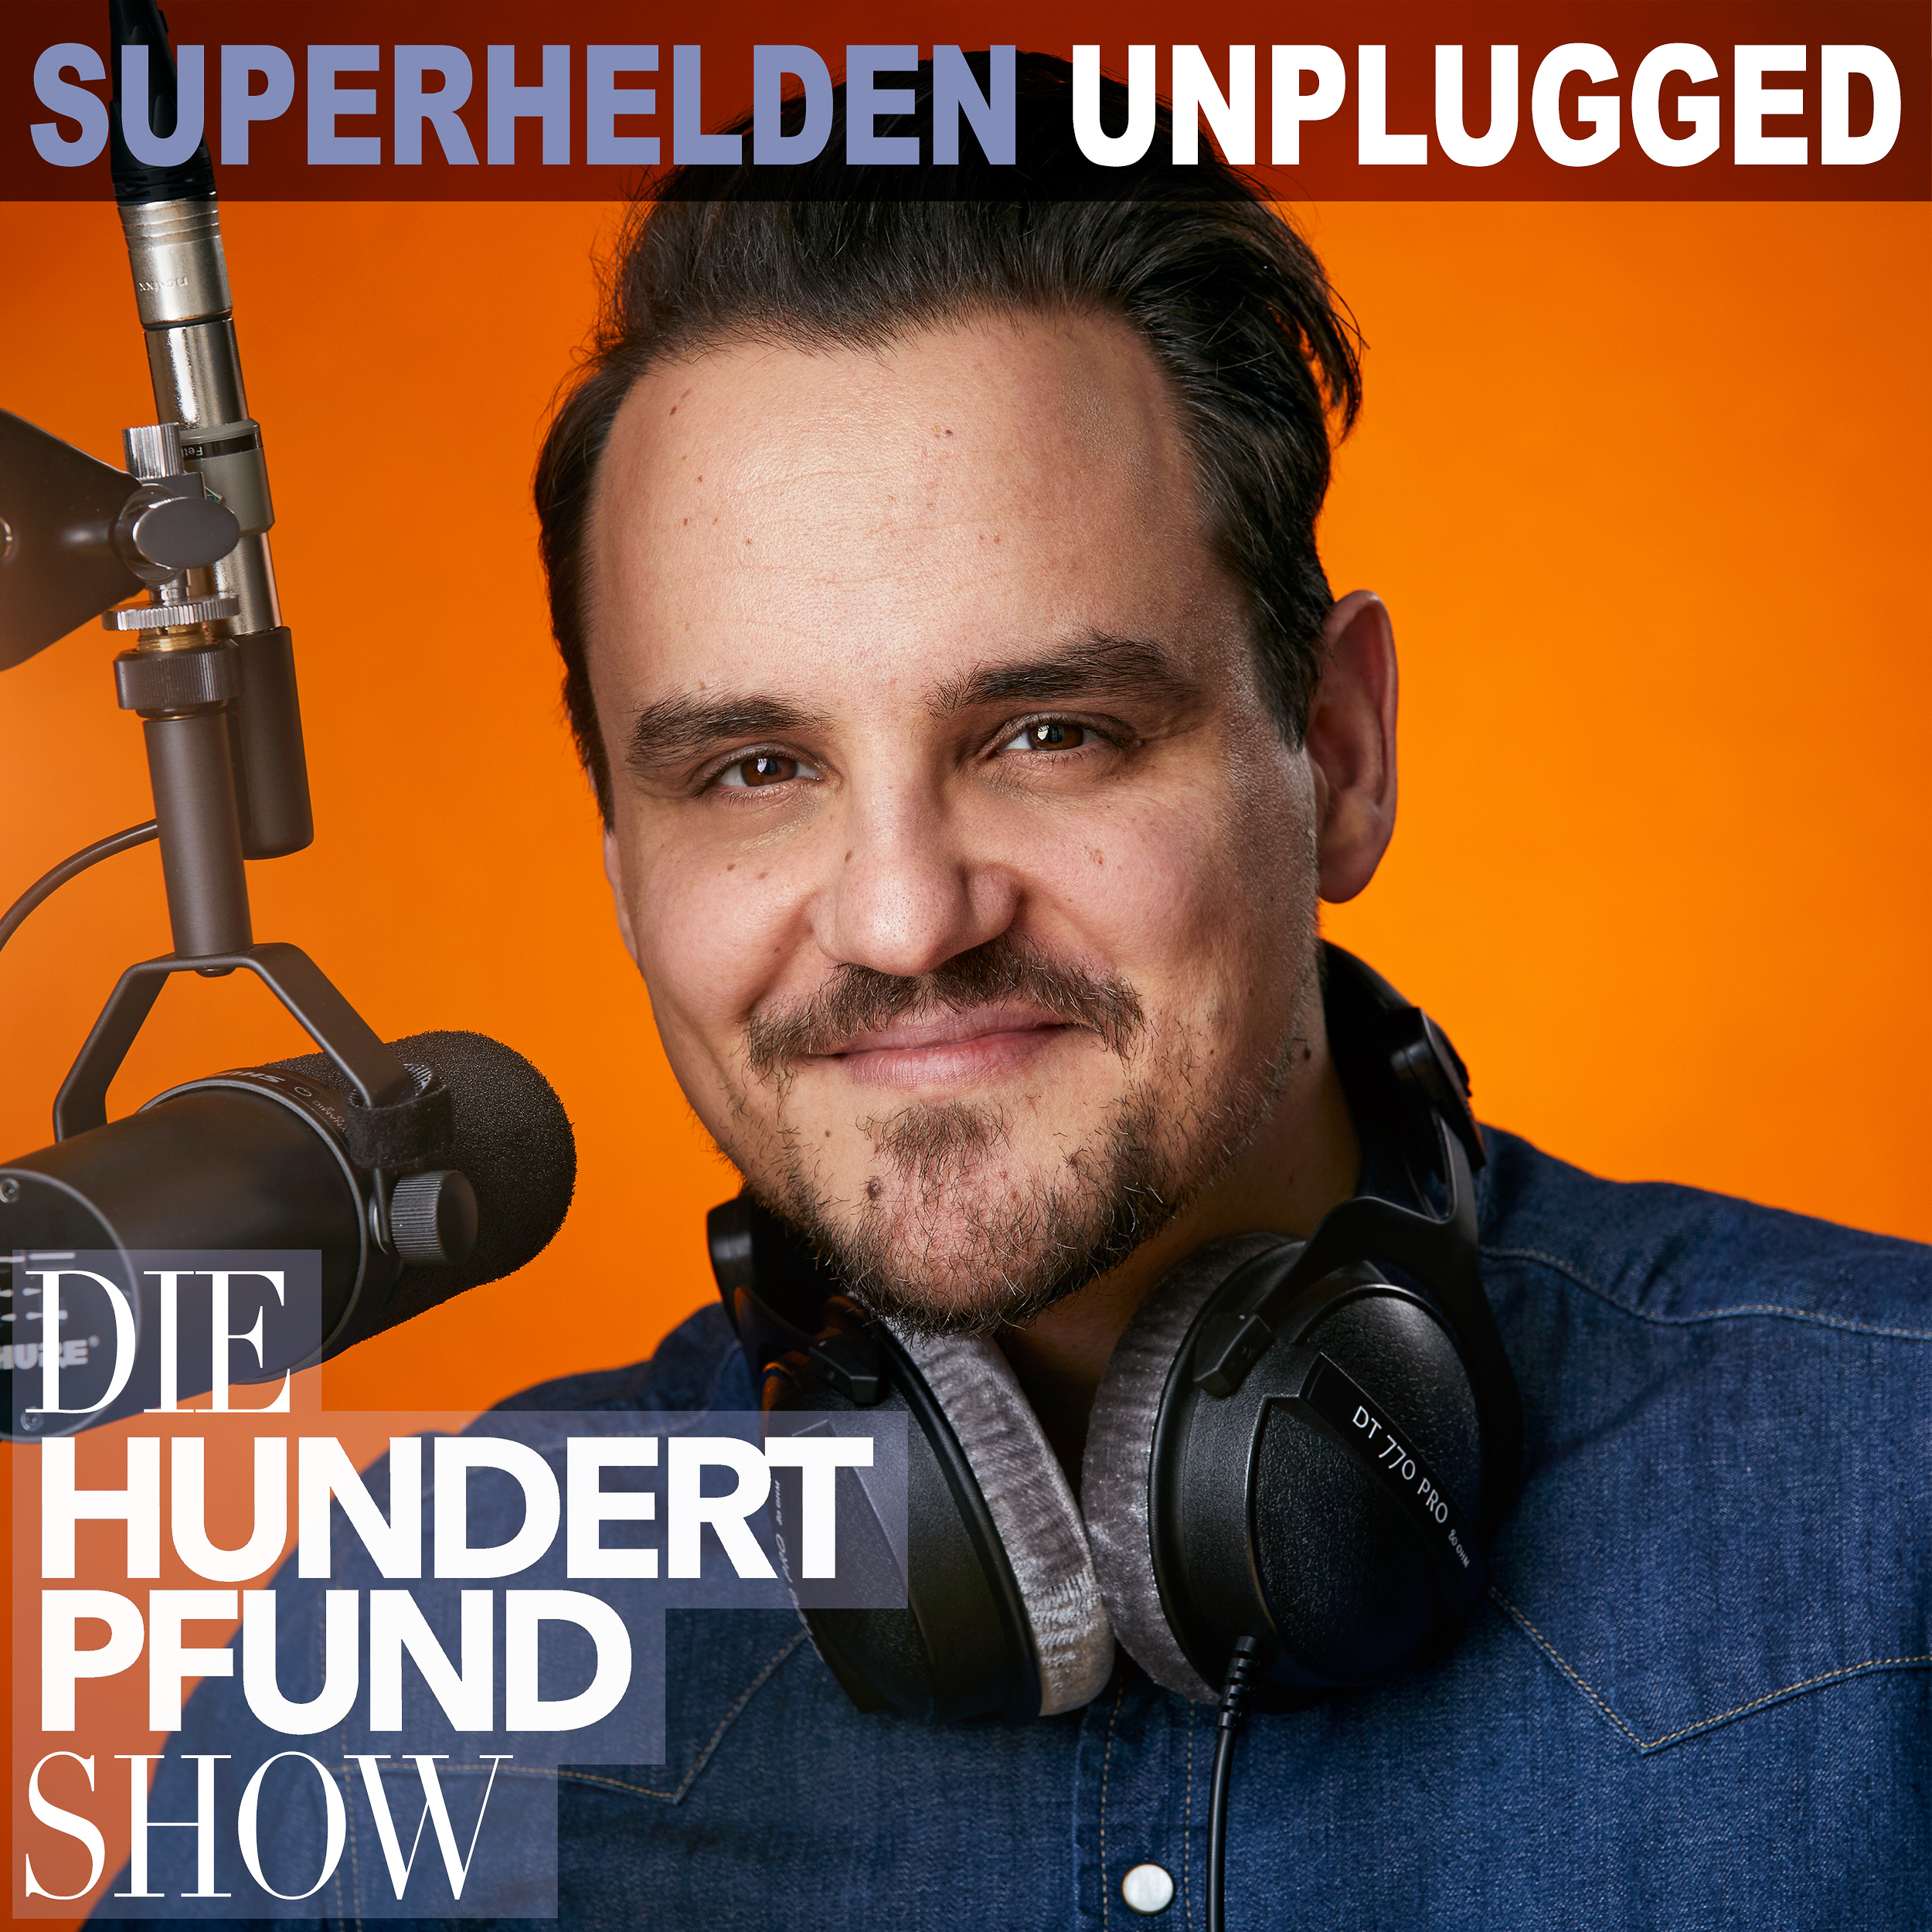 Die Hundertpfund Show - Superhelden Unplugged show art